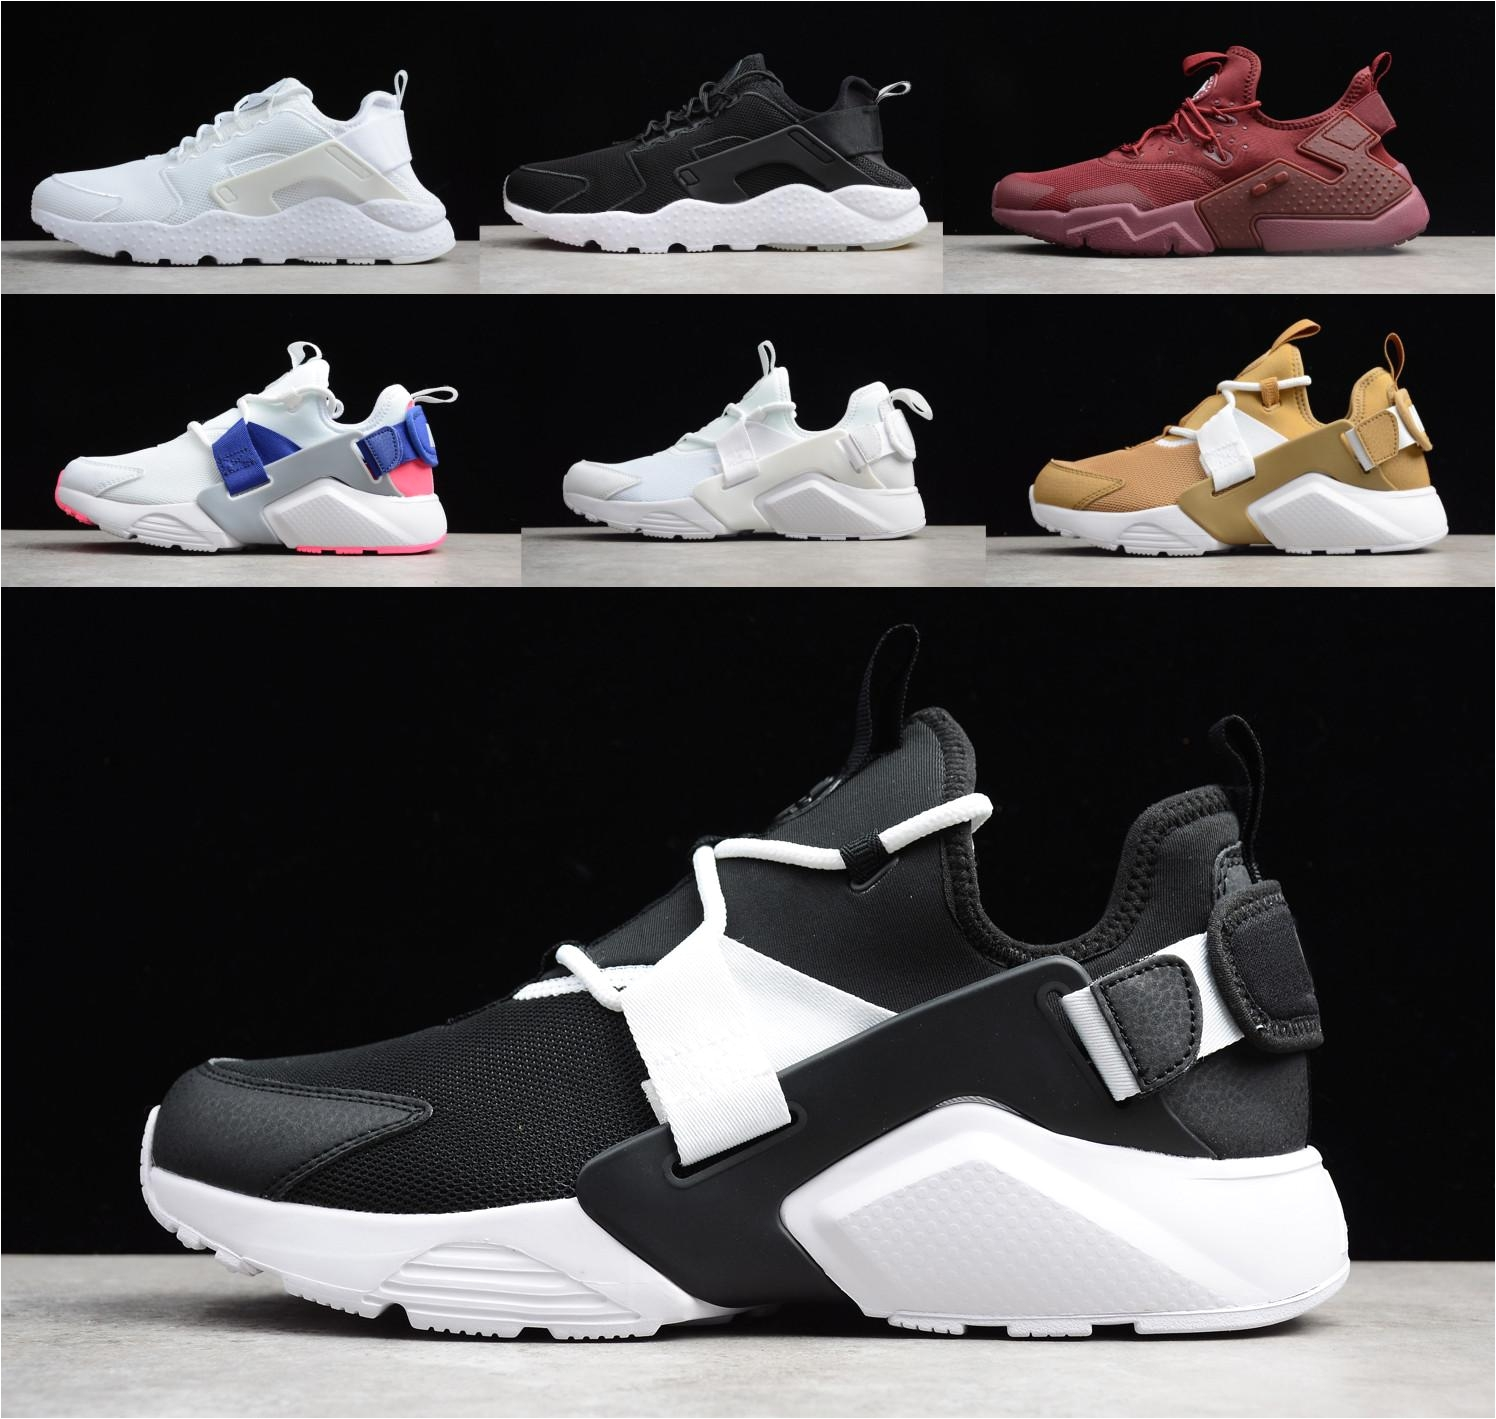 new color huarache custom running shoes for men women navy blue air 3 0 6 0 5 0 sneakers designer brand trainers shoes men sports shoes shoe shops from